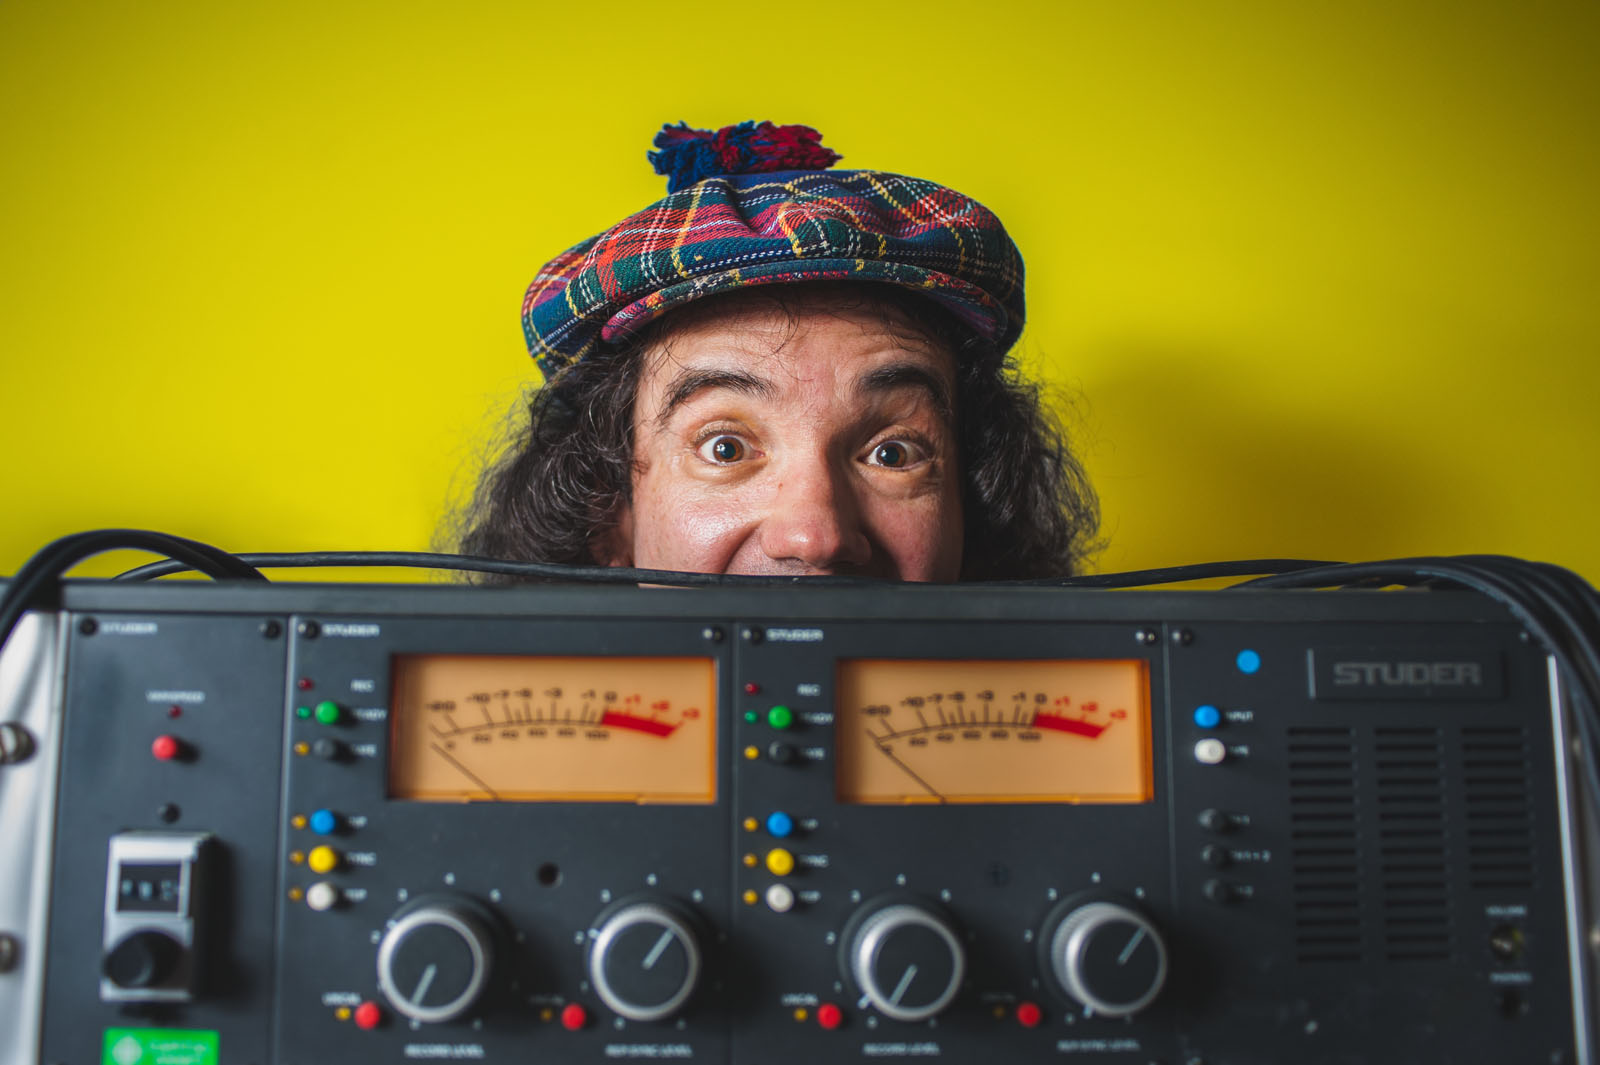 Nardwuar gives advice to students